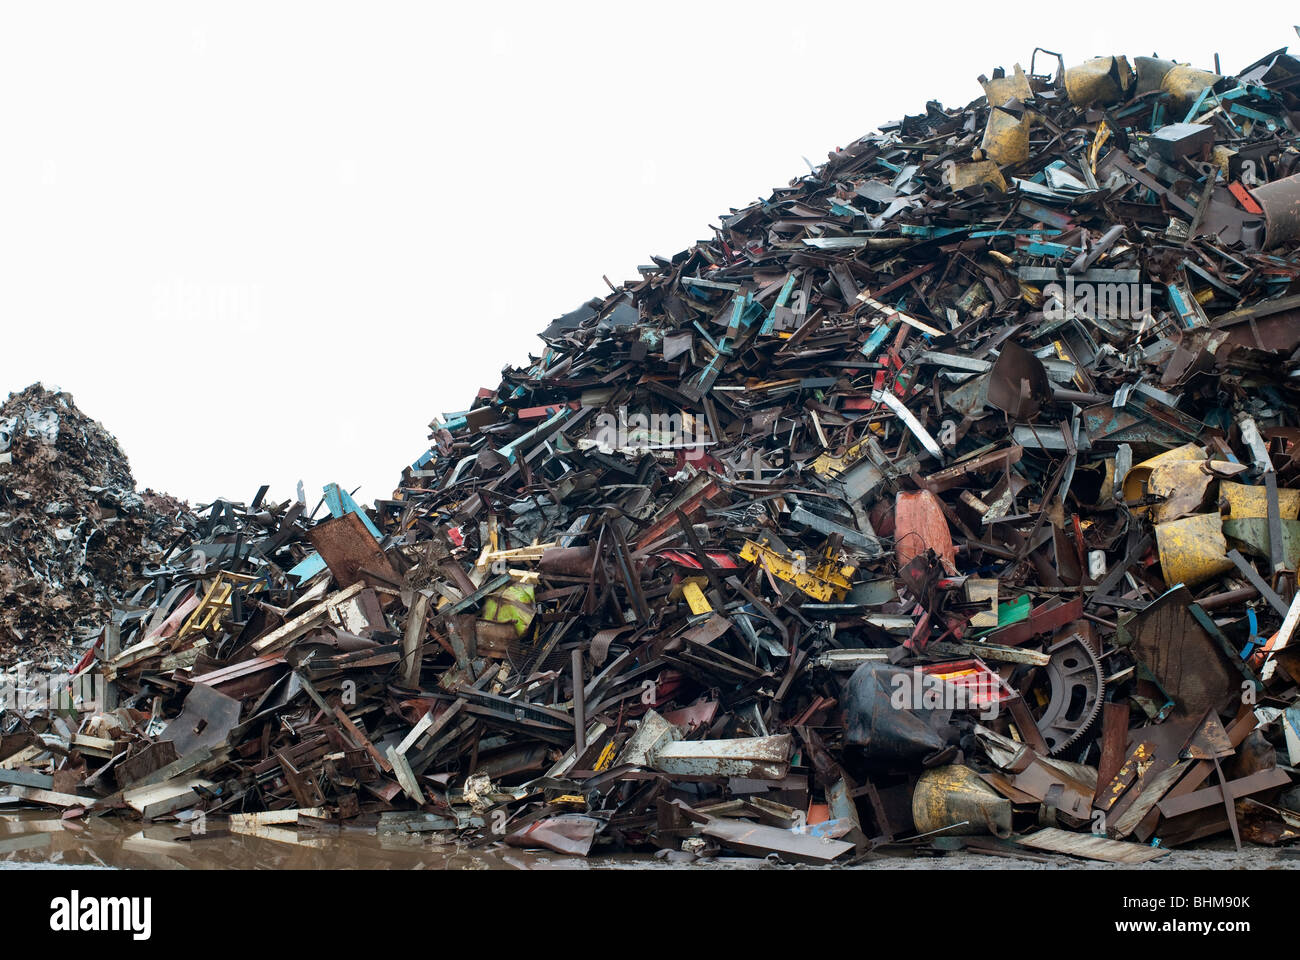 Old waste metal ready for recycling - Stock Image